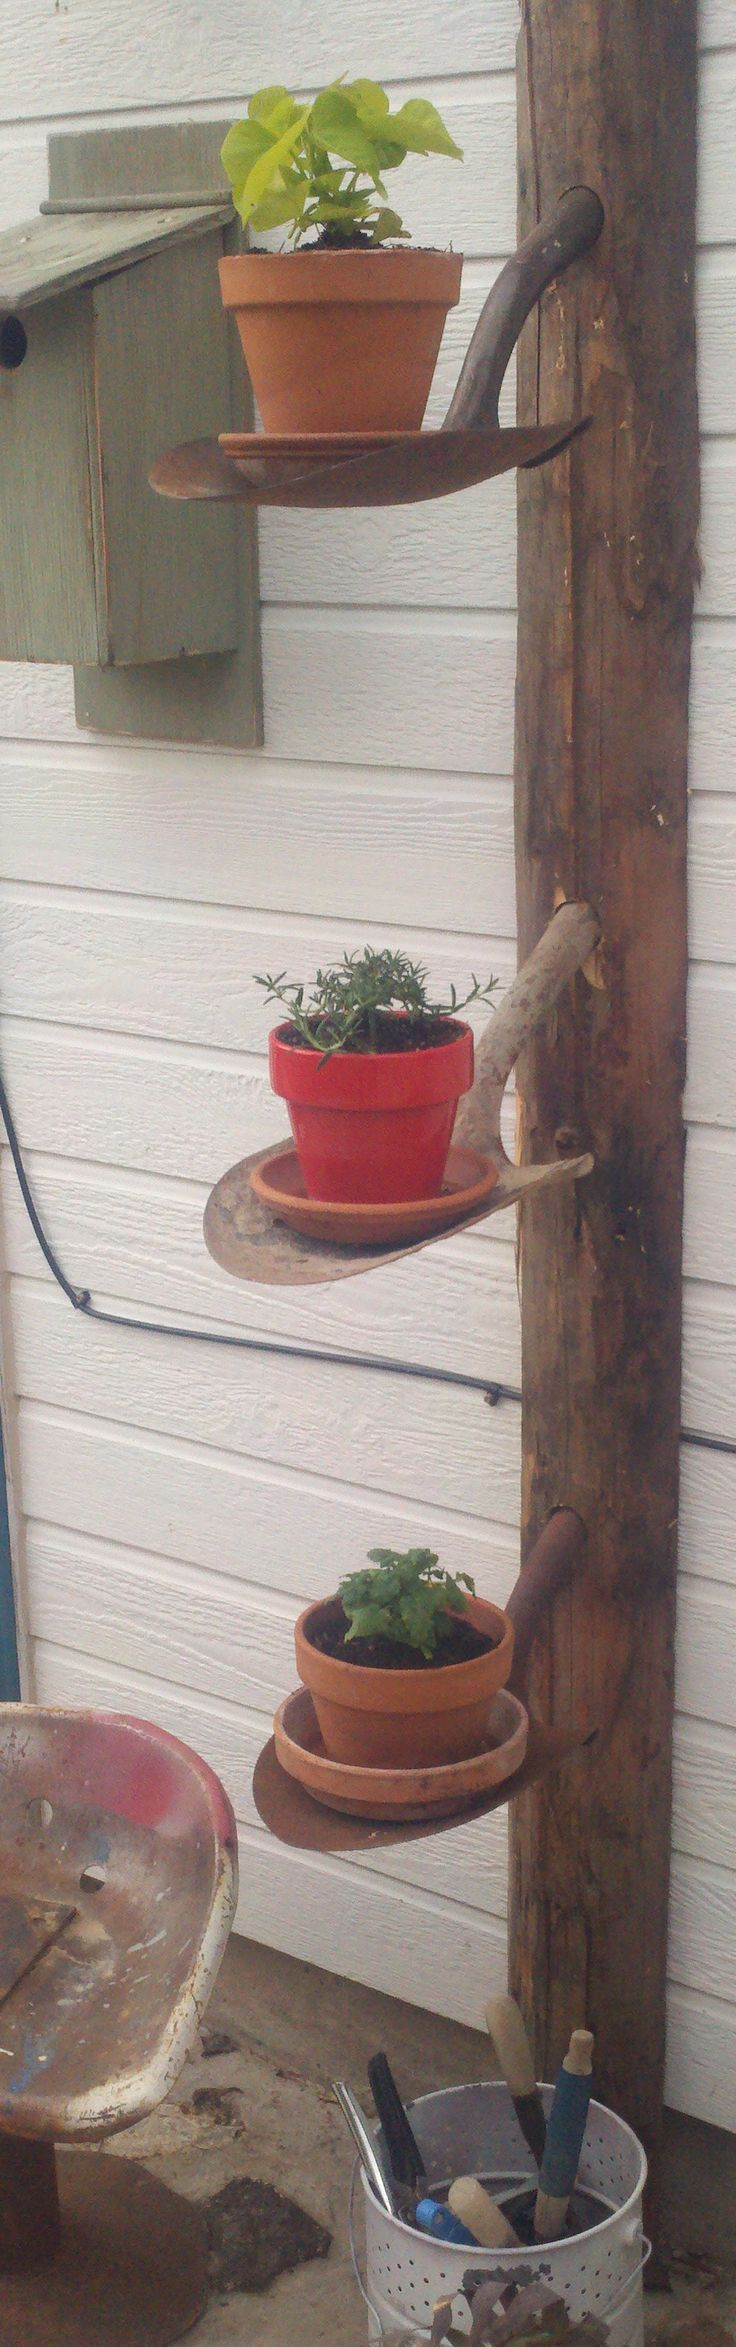 This is cool!! Old post + old shovel heads = rustic garden shelves.